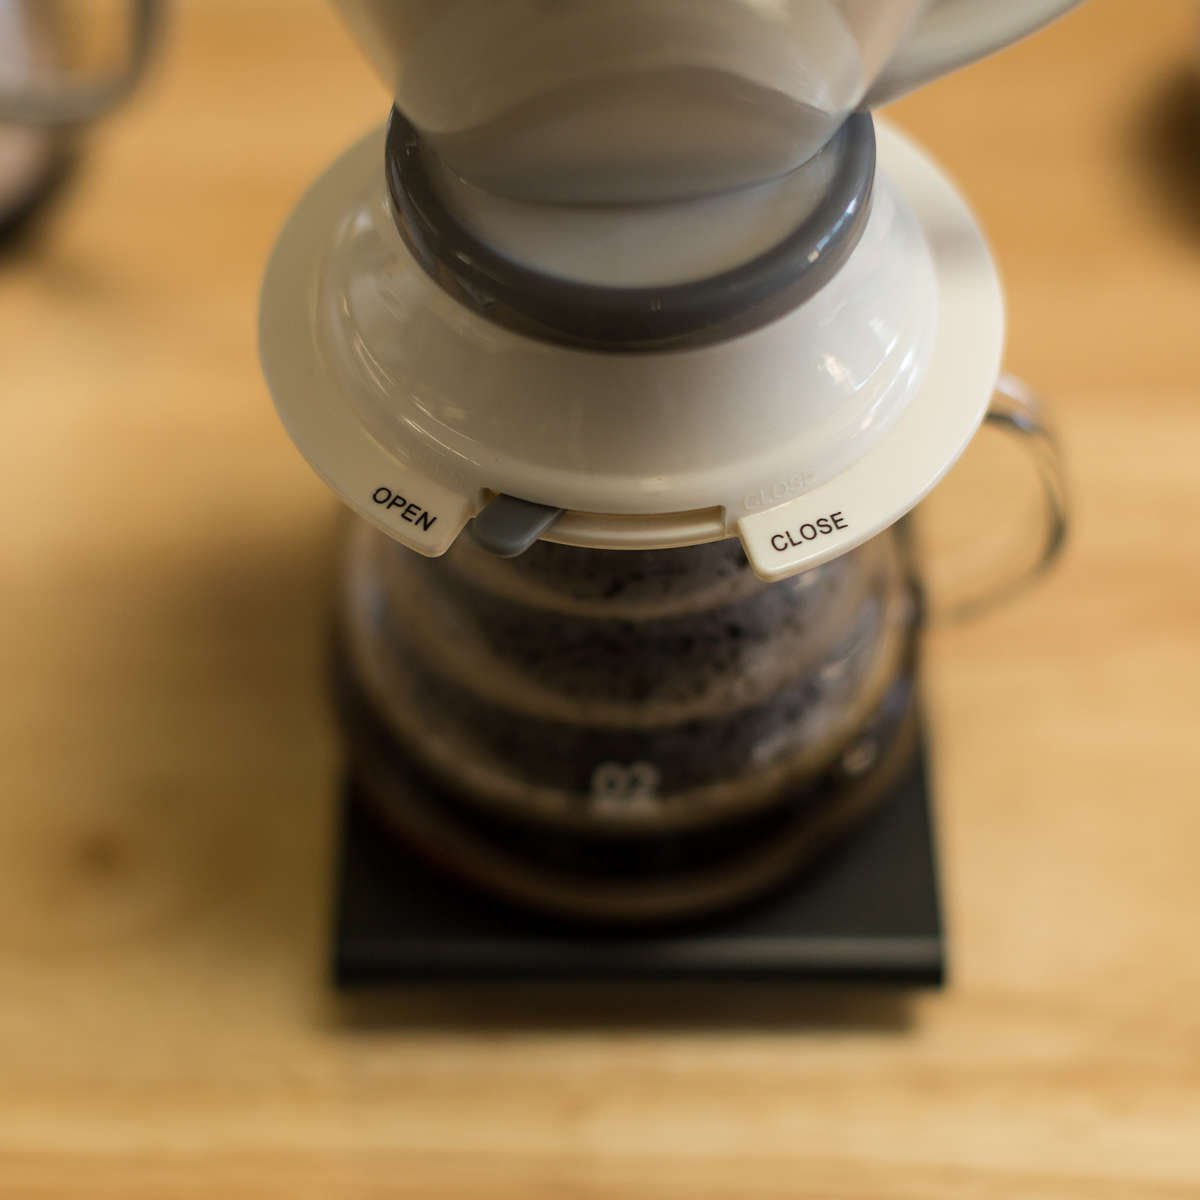 Open/close lever on dripper